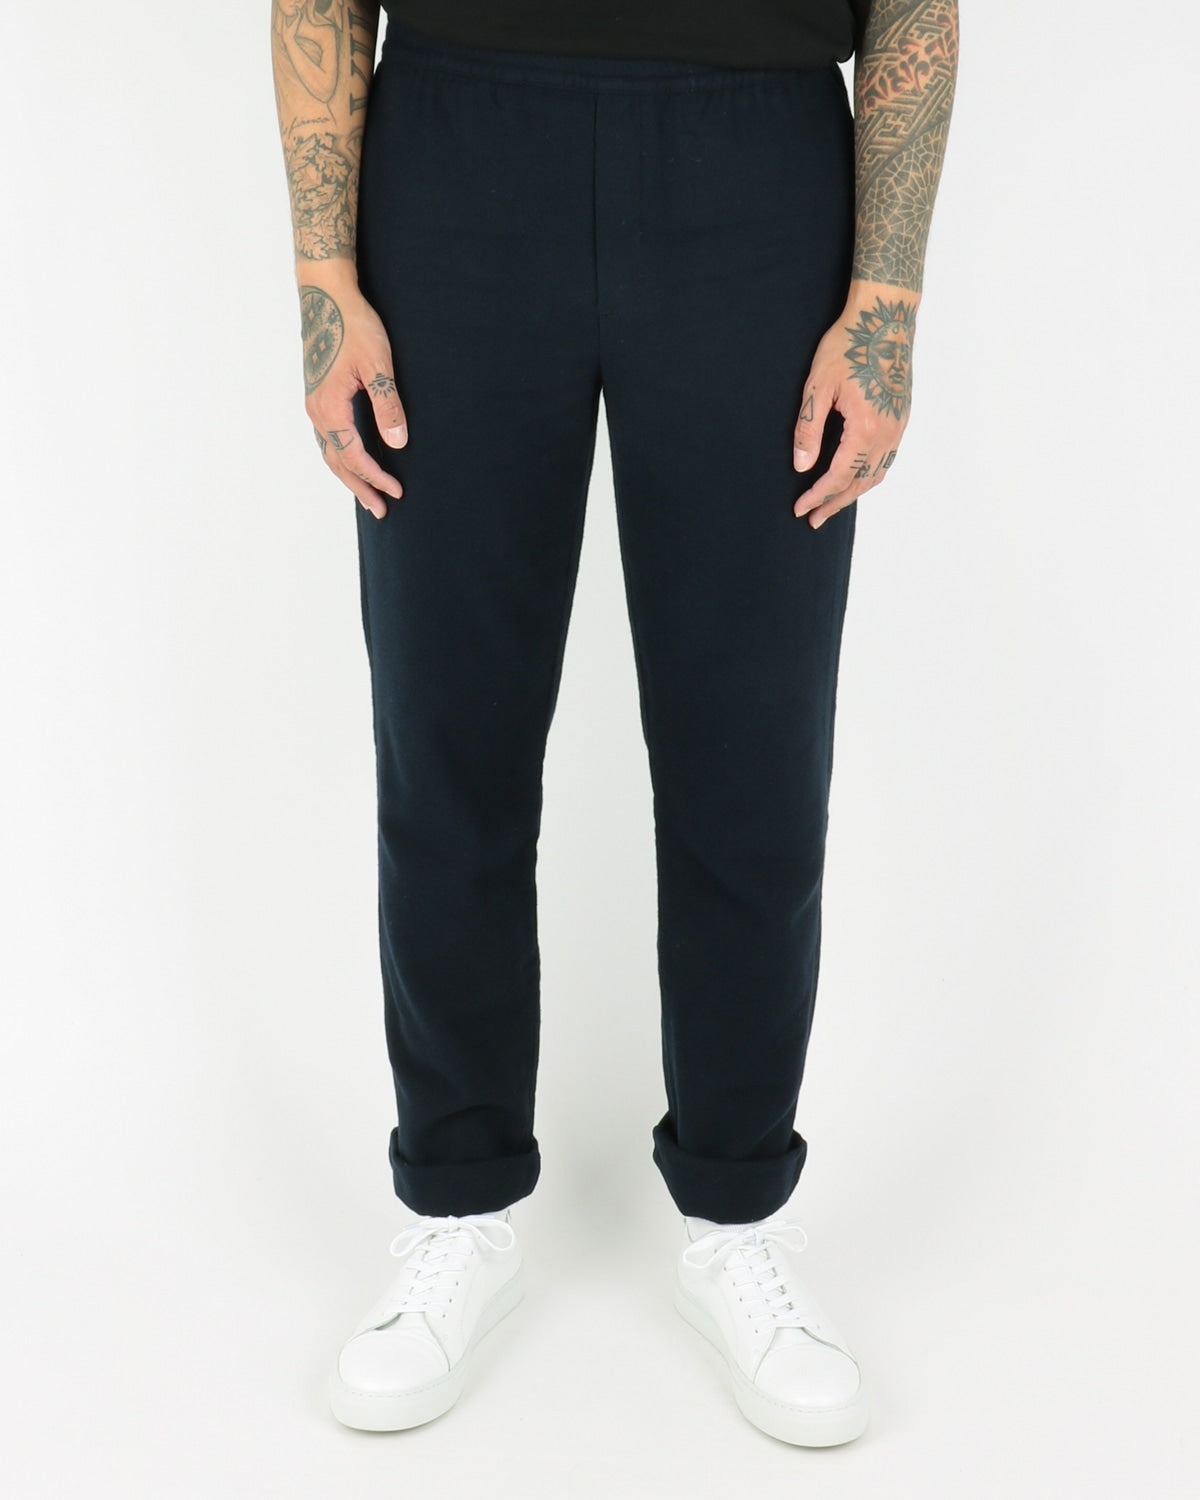 libertine libertine_slow pants_navy_view_1_2